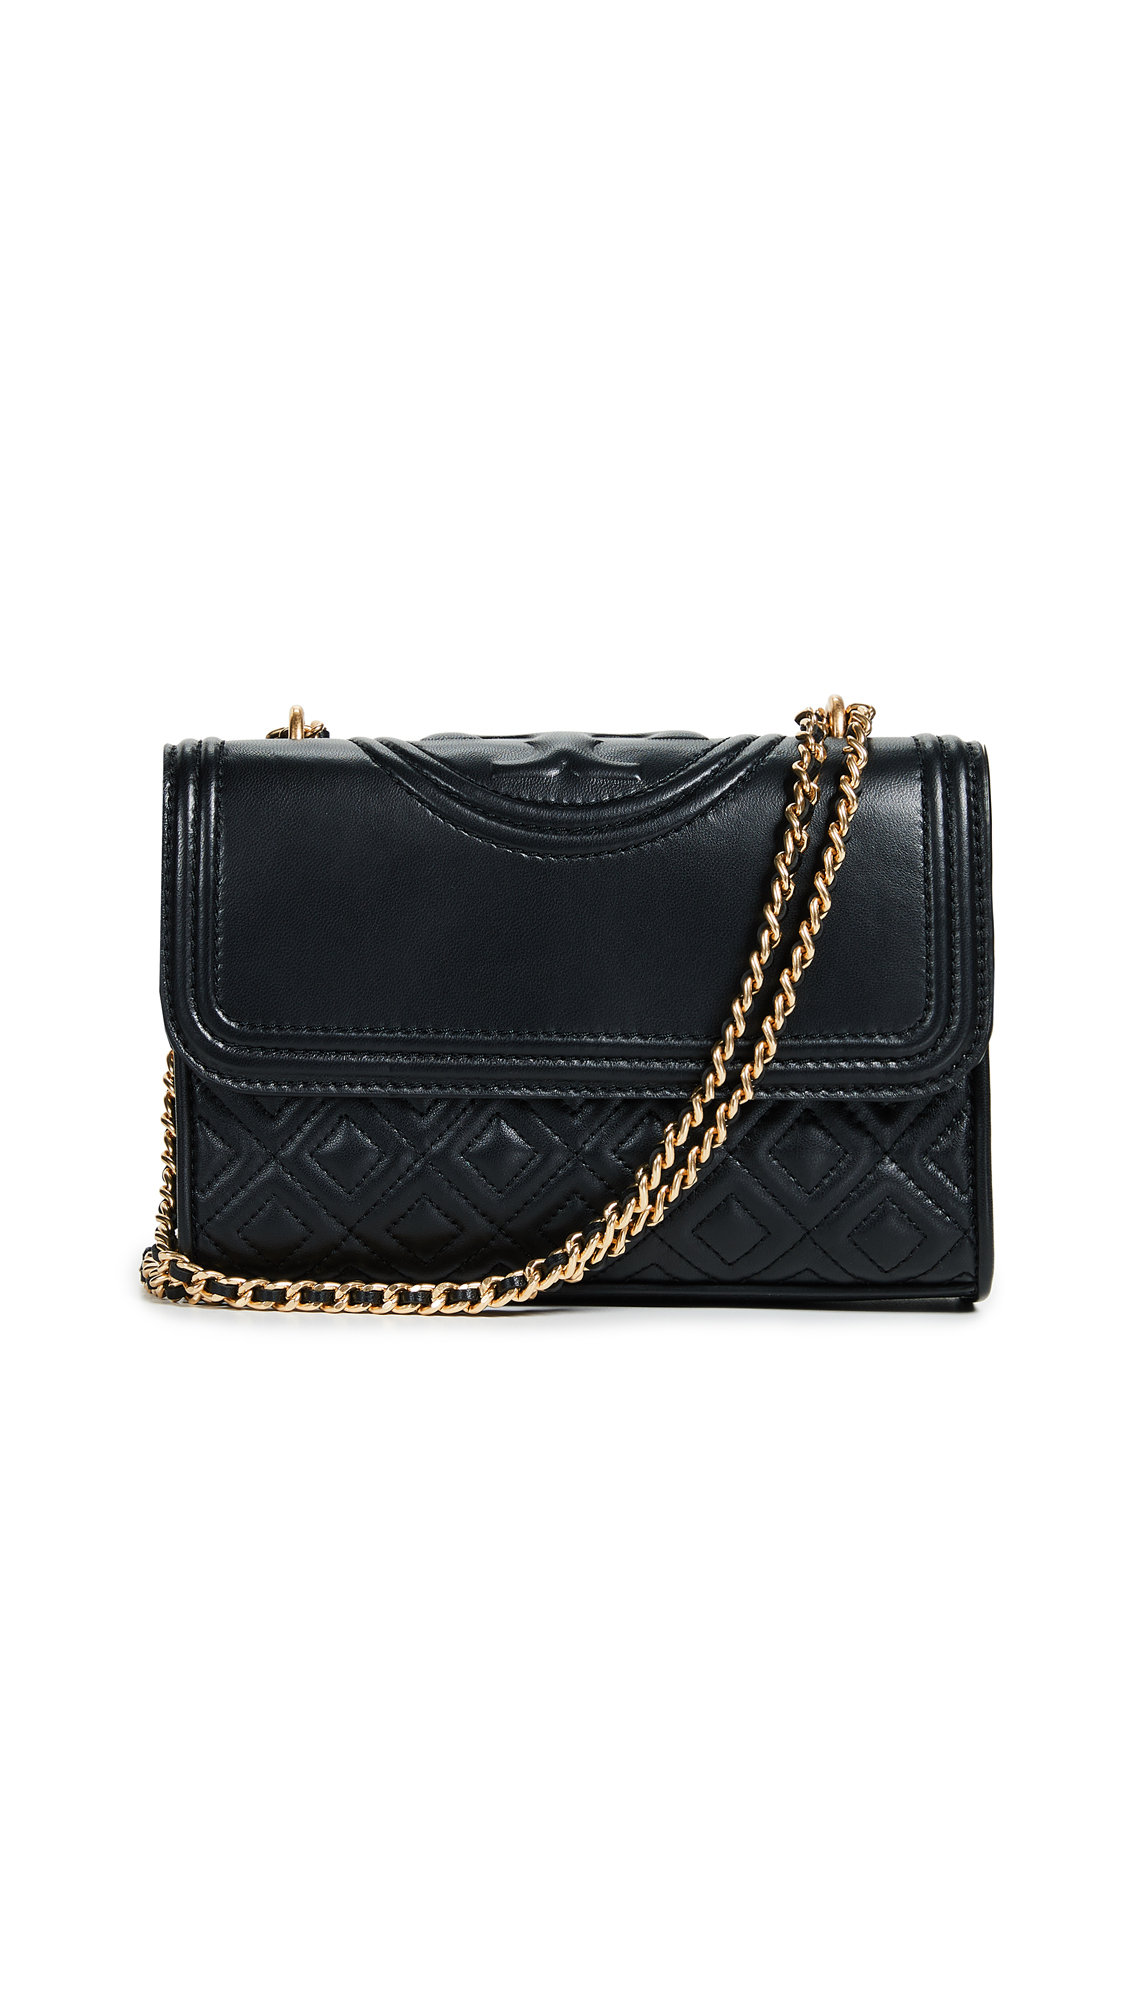 Tory Burch Small Fleming Leather Convertible Shoulder Bag - Black